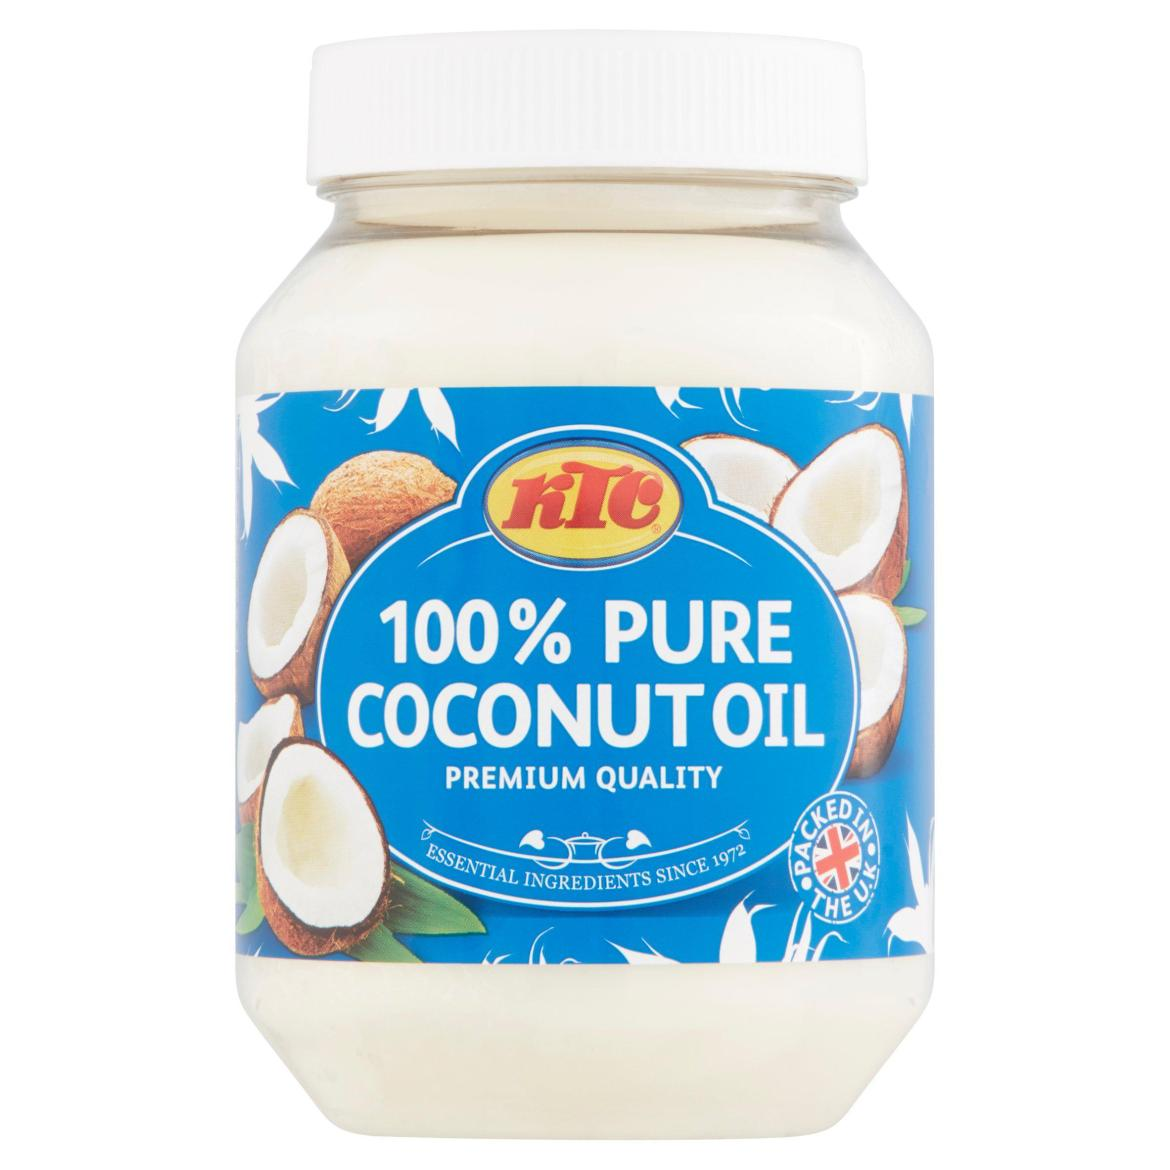 Pick up a 500ml tub of KTC coconut oil for just £2.45 at Sainsbury's